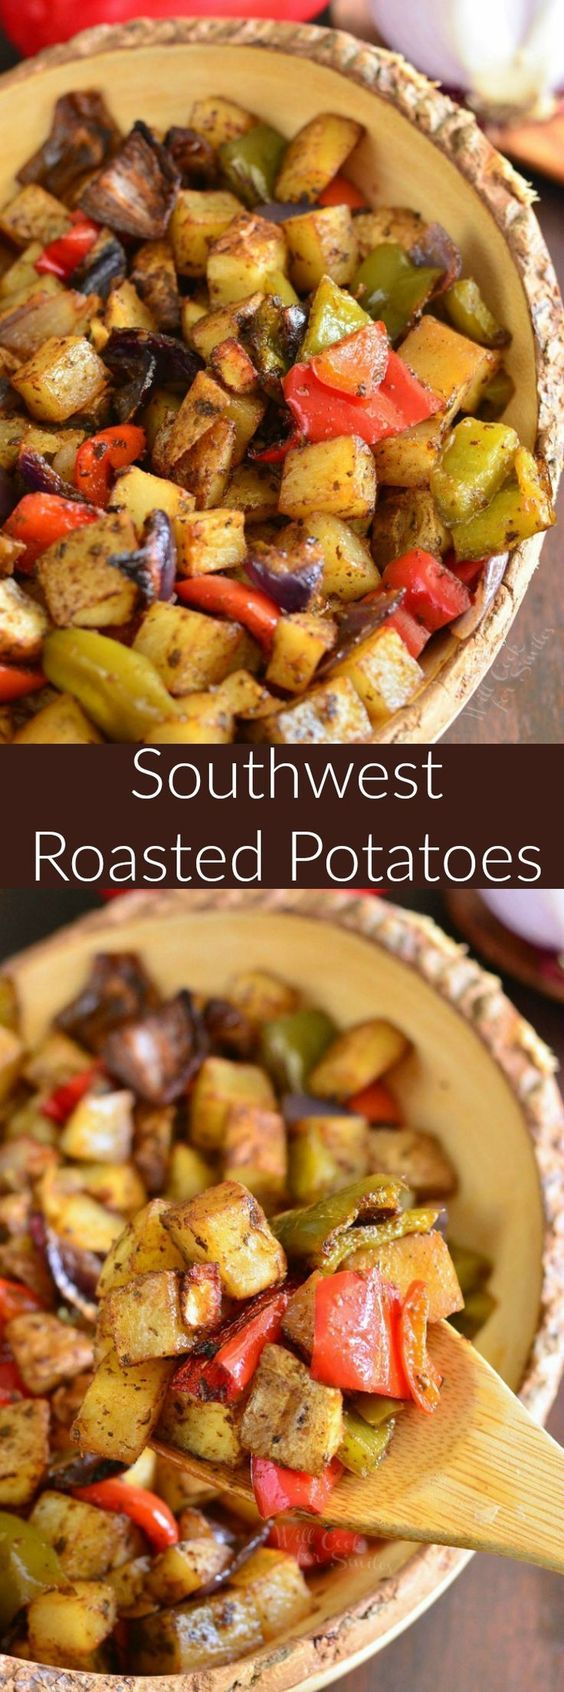 kitchen boss eggplant caponata%0A Southwest Roasted Potatoes  These roasted potatoes also have red onion and  bell peppers added to